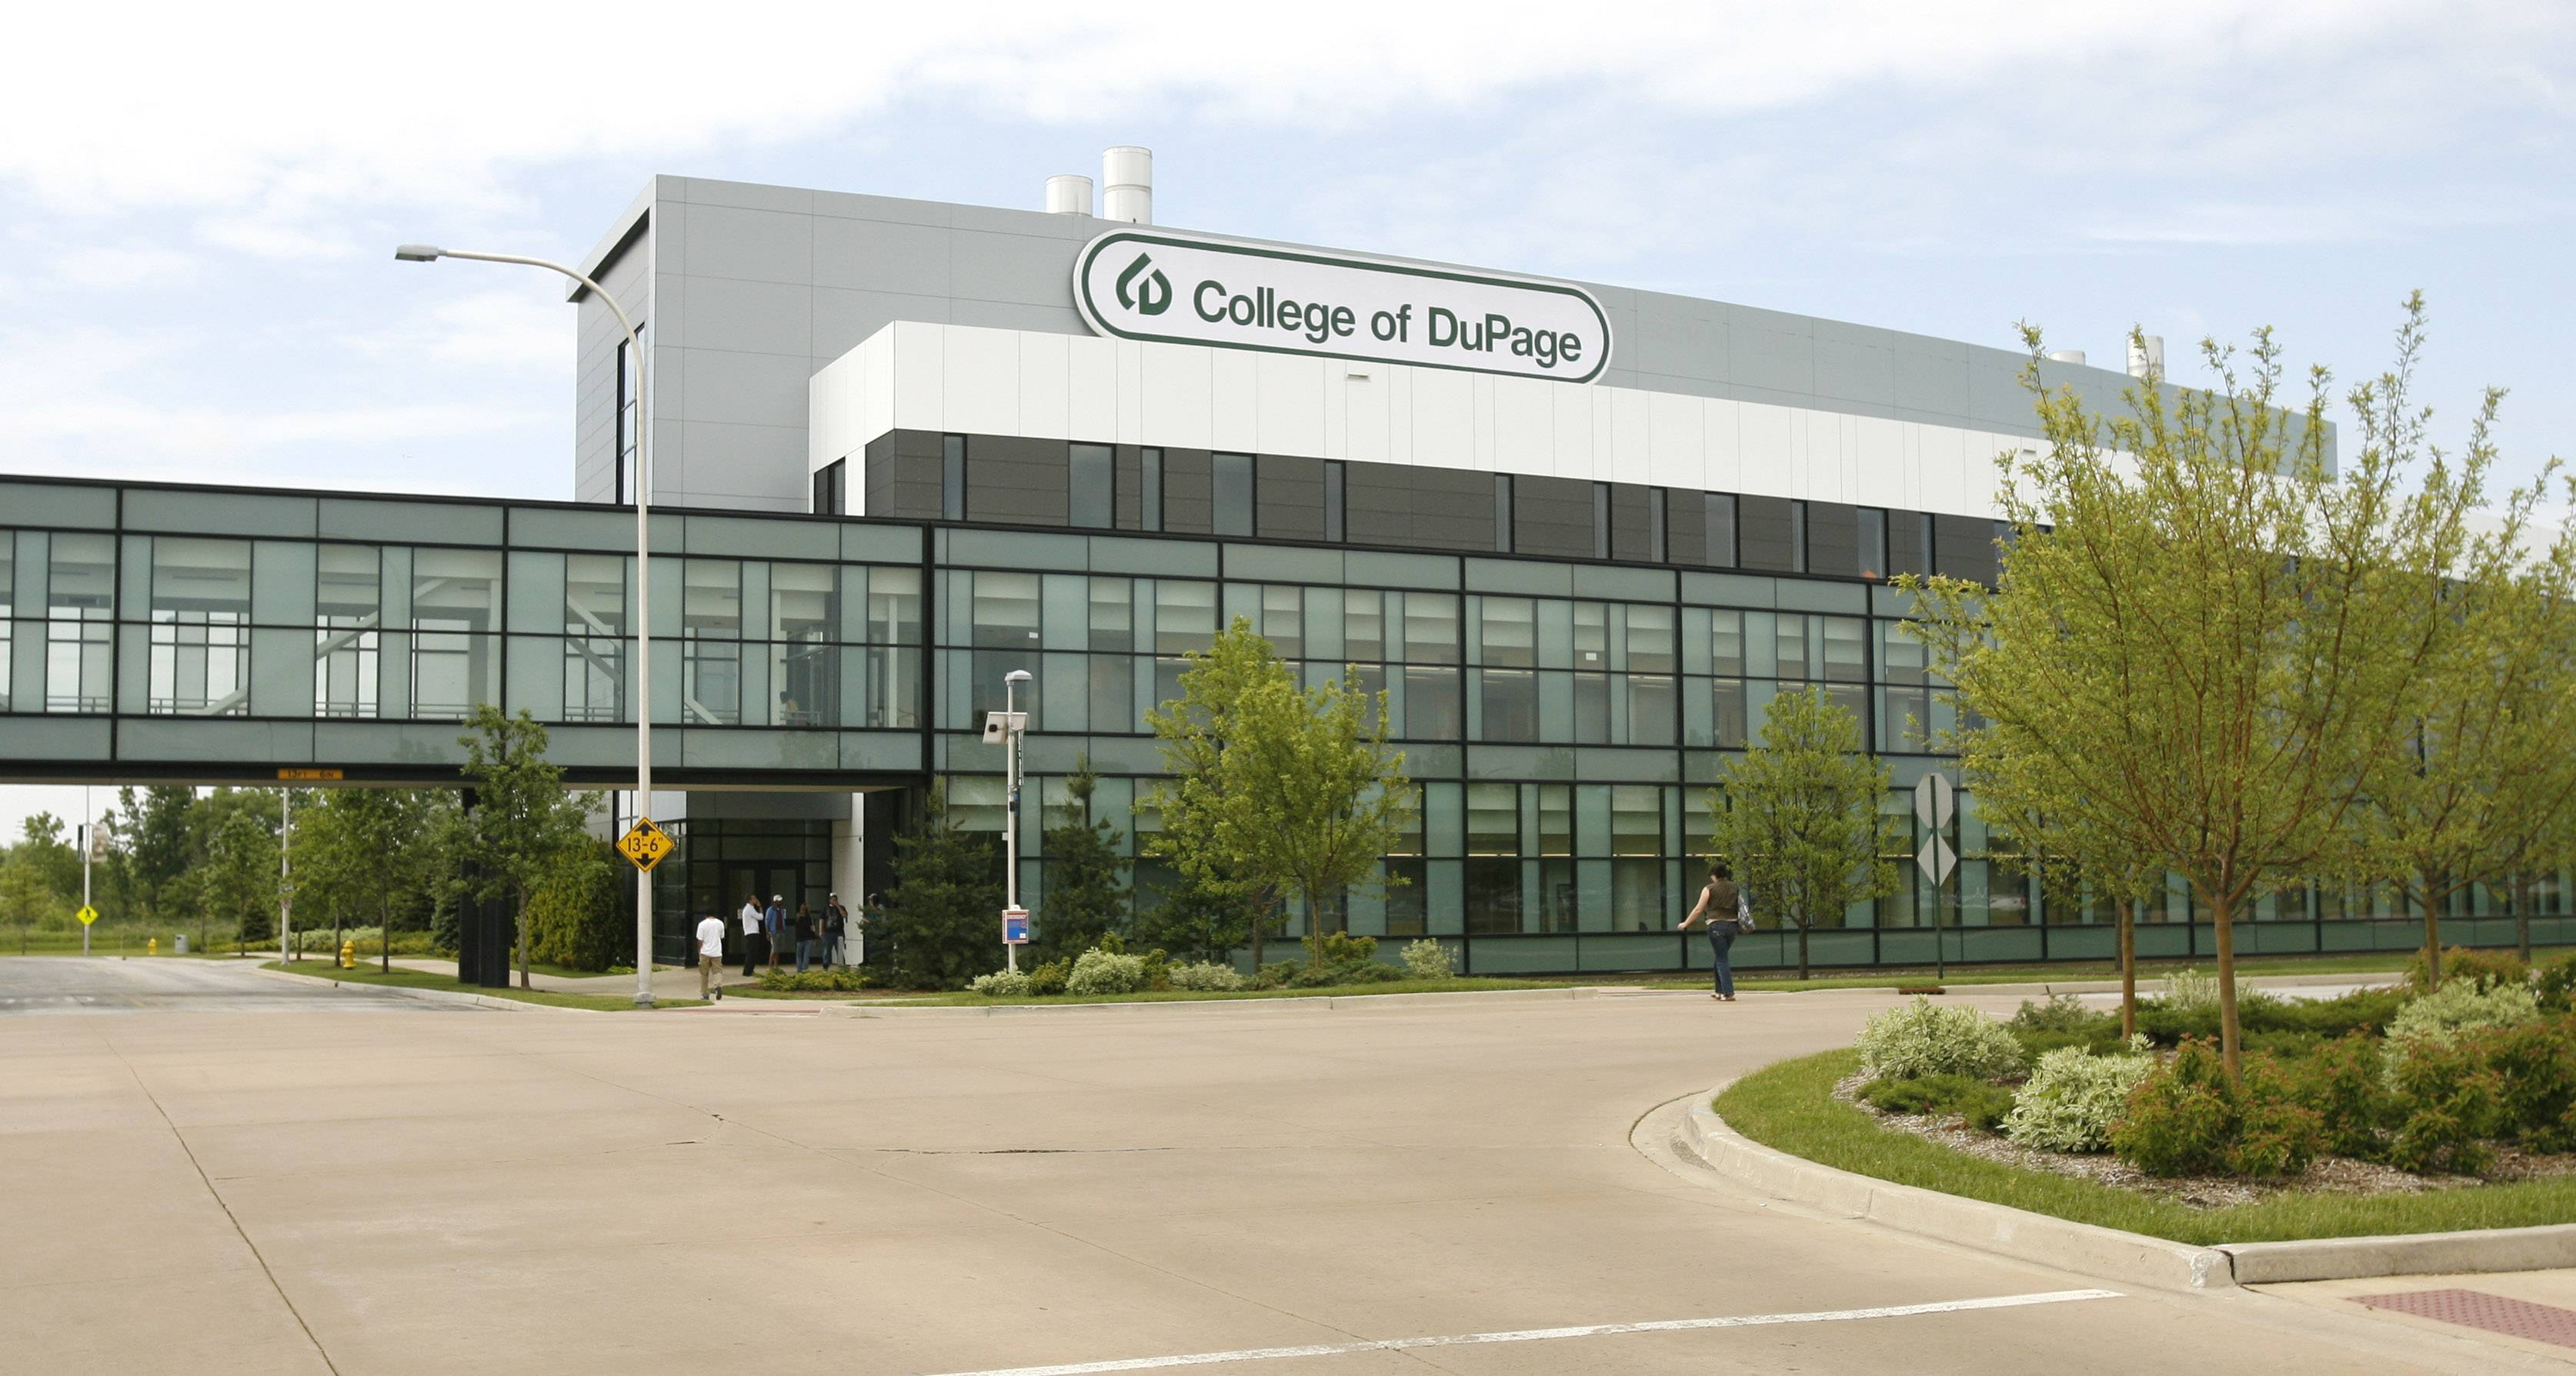 College of DuPage, the state's largest community college, has a lot going for it, but regrettably the story does not end there.